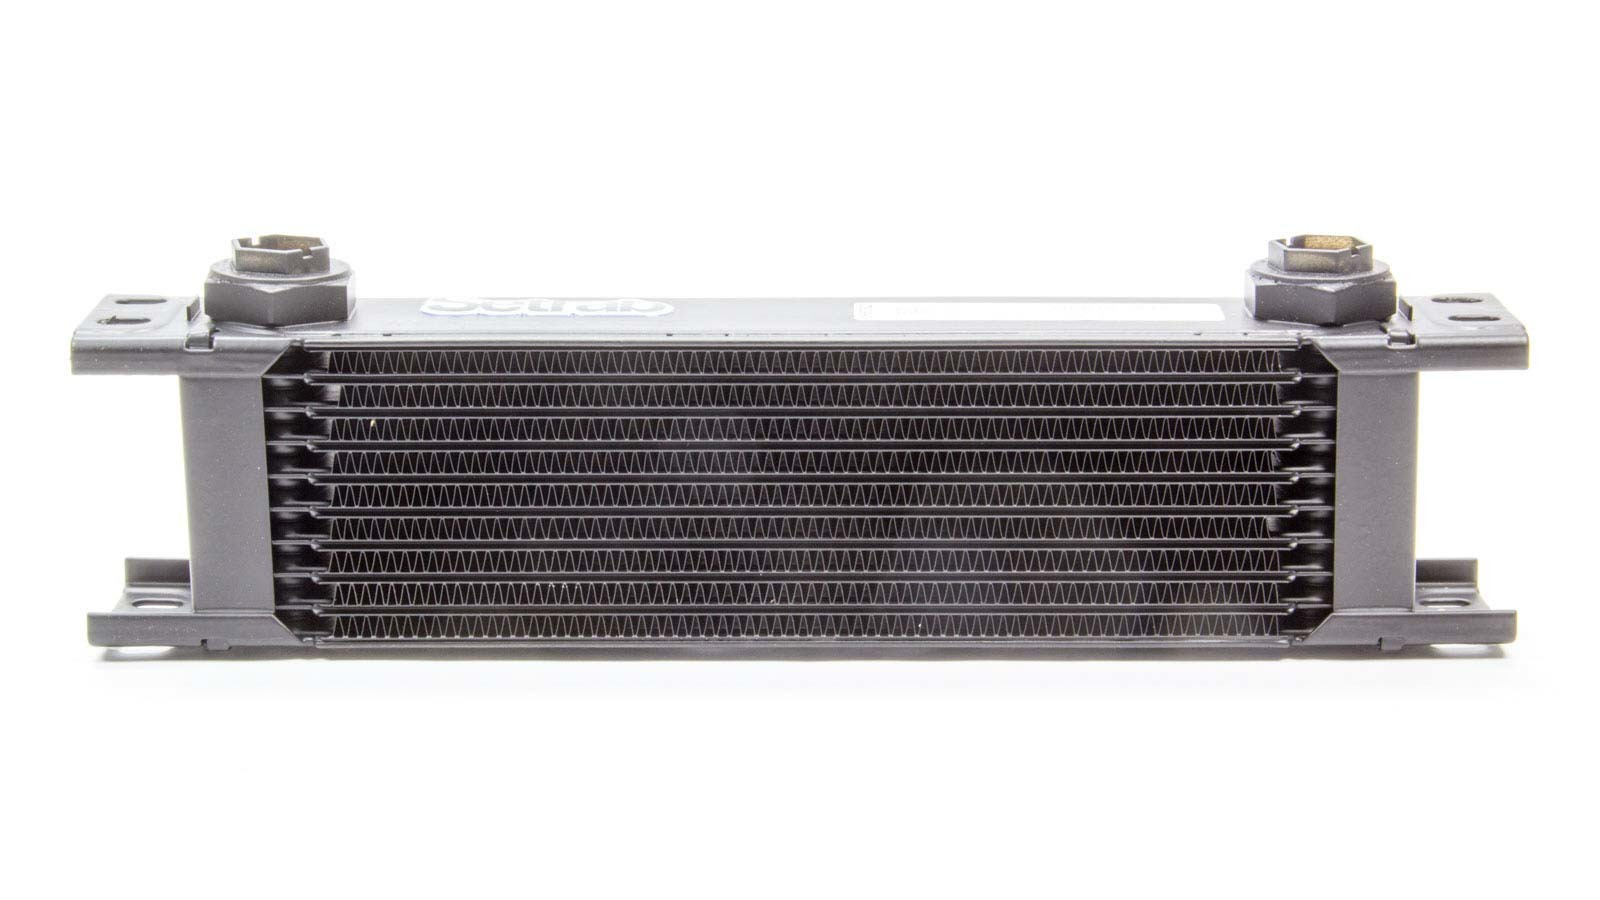 Series-6 Oil Cooler 10 Row w/M22 Ports